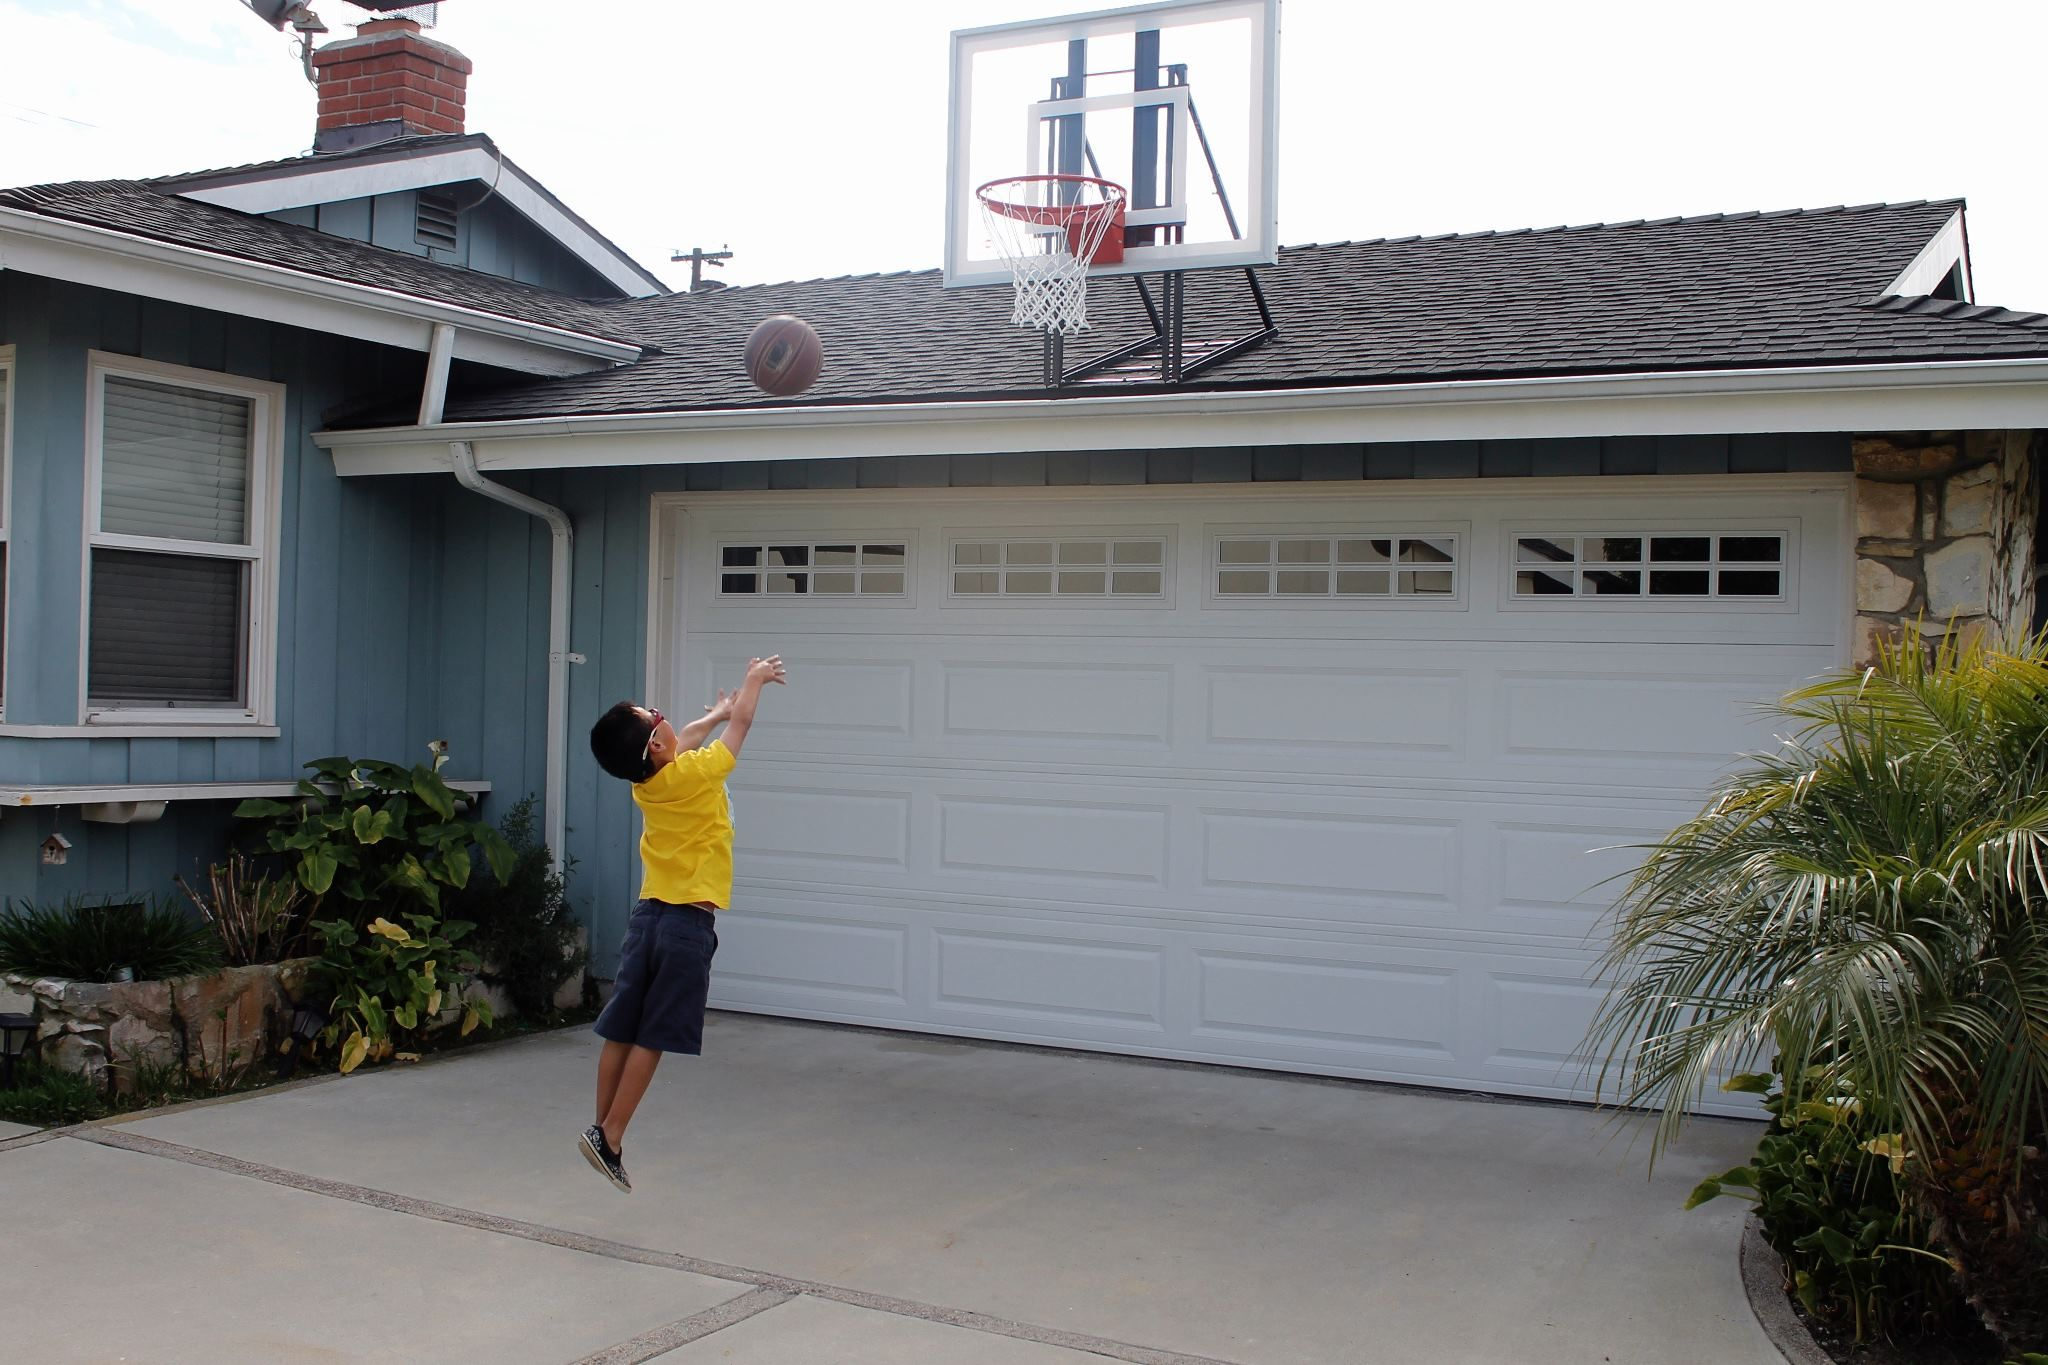 the roof king gold basketball hoop is mounted to a typical looking